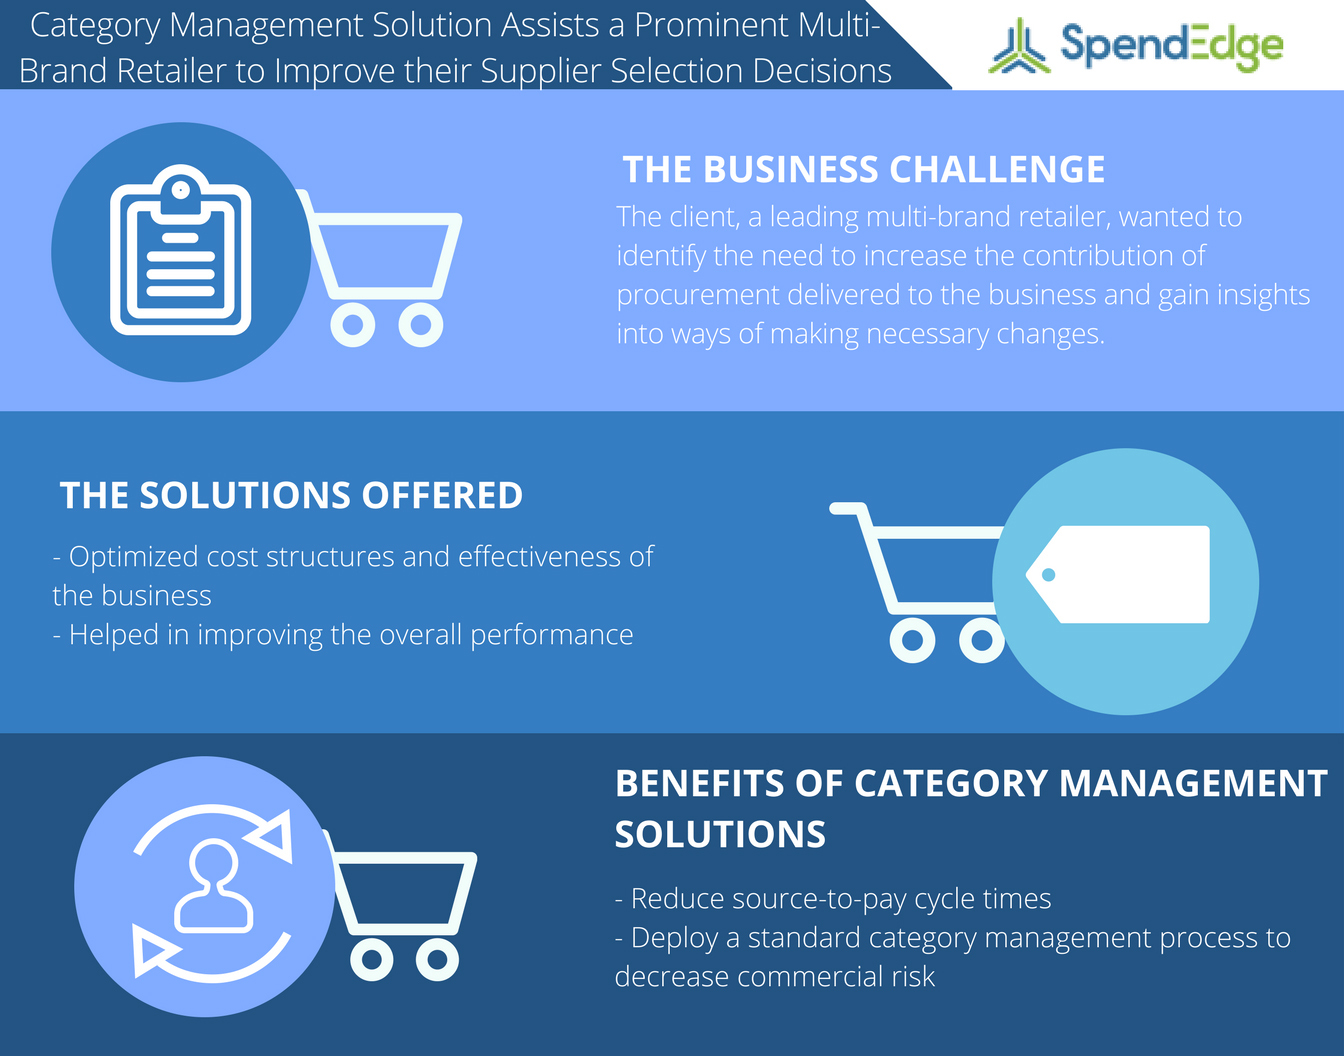 Category Management Solution Assists a Prominent Multi-Brand ...